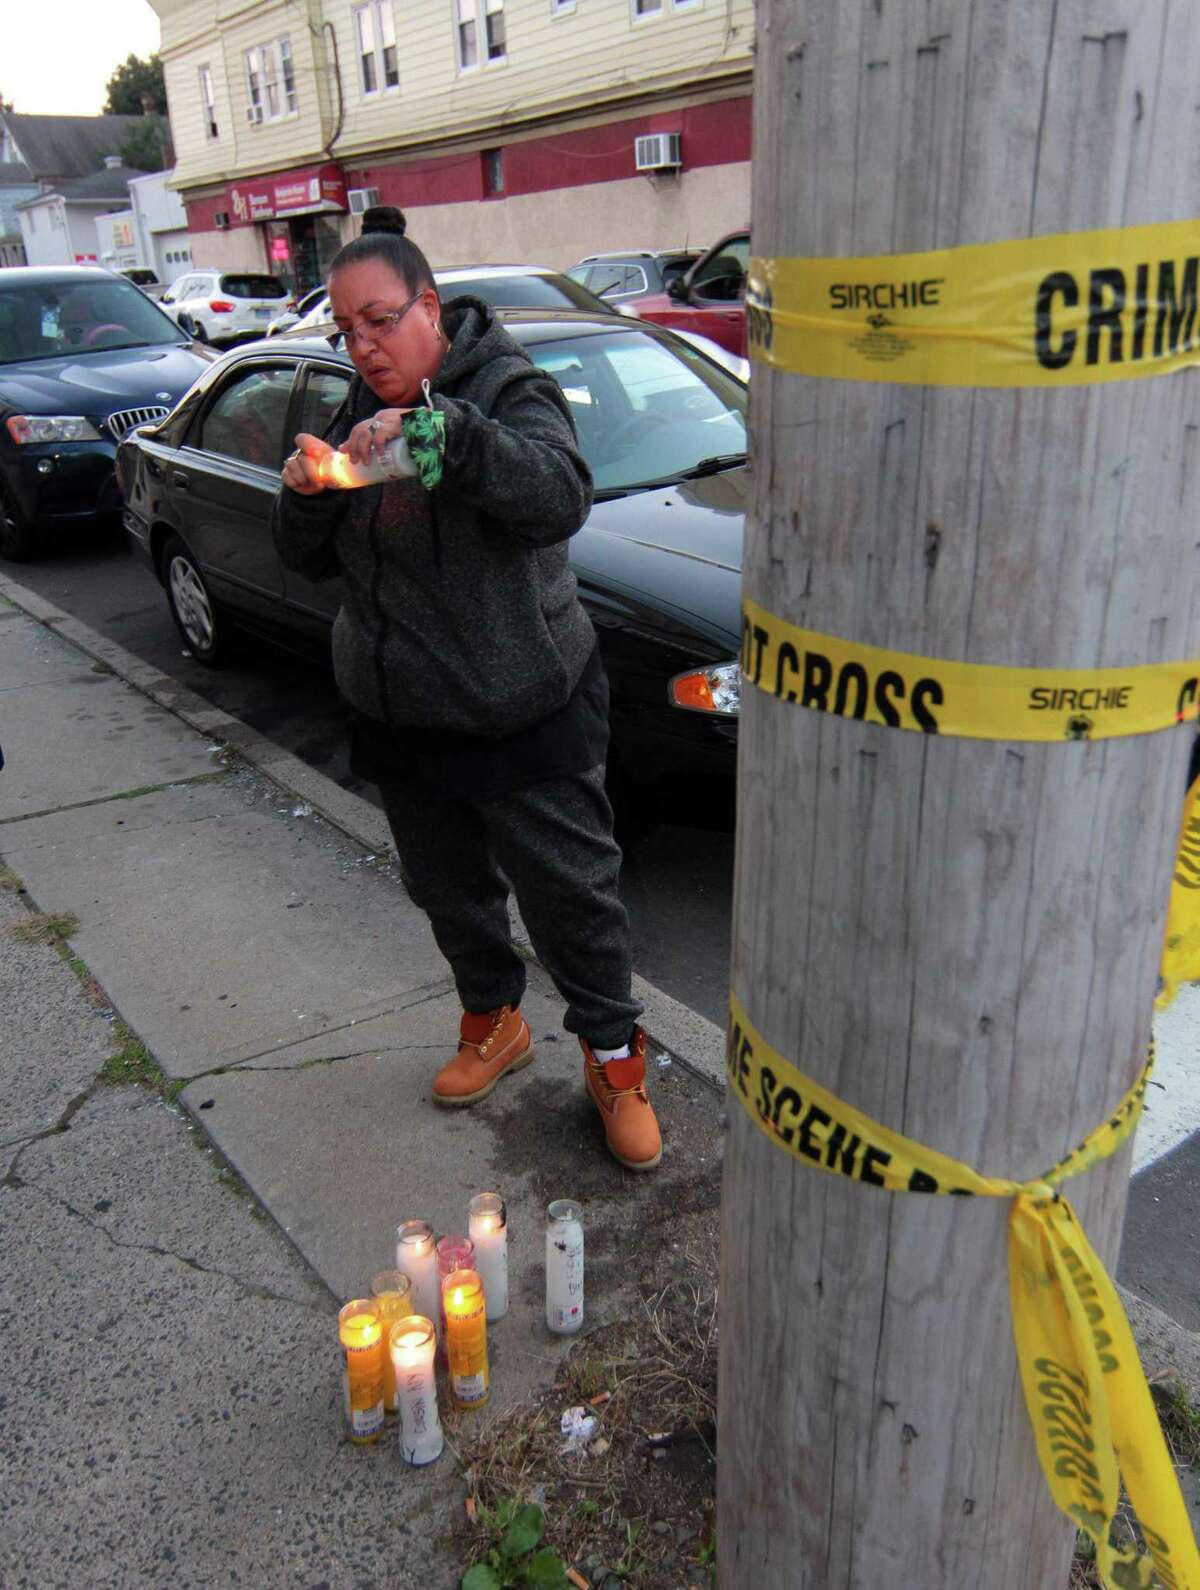 Saida Duberry lights candles at a memorial set up for Nyair Charles Nixon Jr. outside the now shuttered Keystone Mens Club on Barnum Avenue in Bridgeport, Conn., on Thursday Oct. 1, 2020. Some 60 people gathered outside the Keystone to demand the FBI take over the investigation and look into the actions of Bridgeport City Council Member Eneida Martinez, who manages the club were Nixon was shot before stumbling into the street where he was struck by a fleeing car.